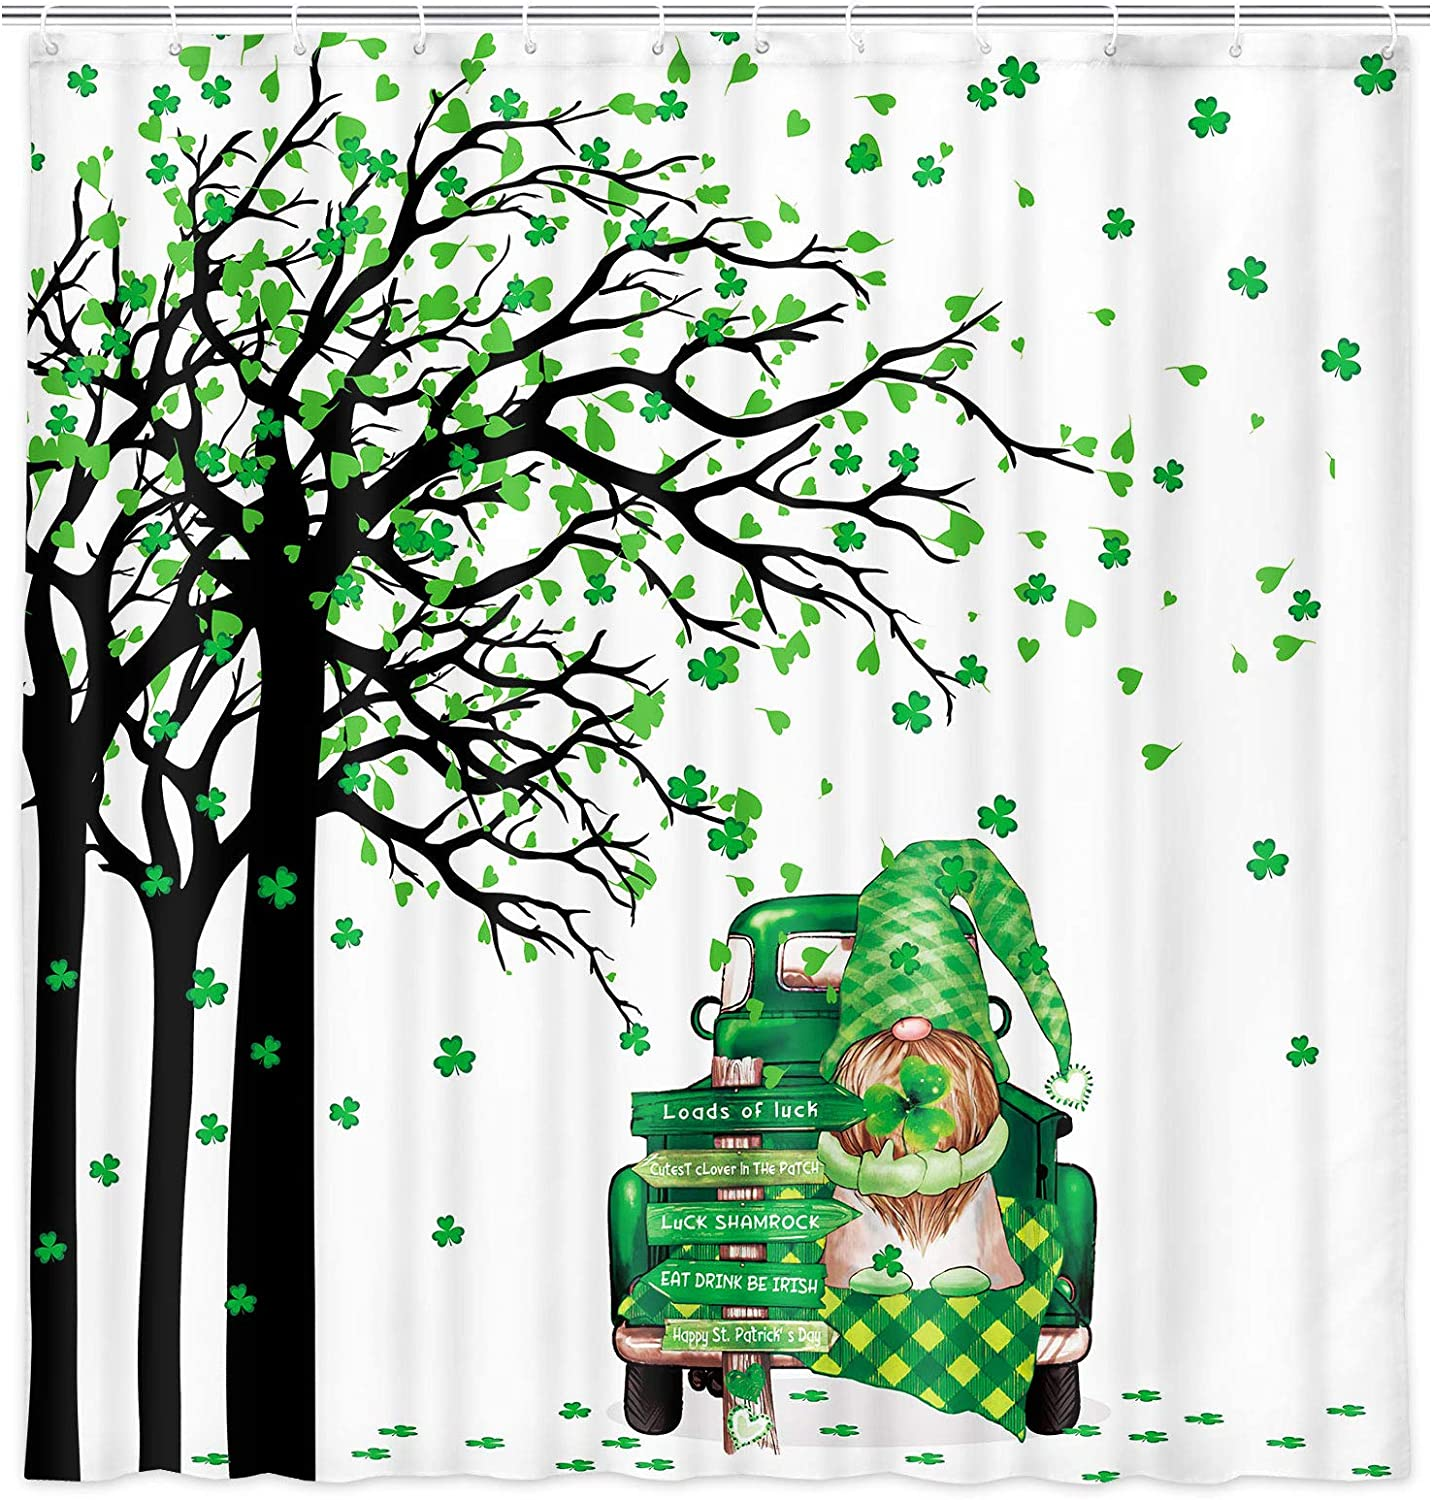 Retro St Patrick's Day Clover Leaf Tree Shower Curtain, Green Truck with Cute Gnome for Modern Farmhouse Fabric Shower Curtain Set, Buffalo Check Plaid Decor Cloth Bathroom Shower Curtains 71 Inch